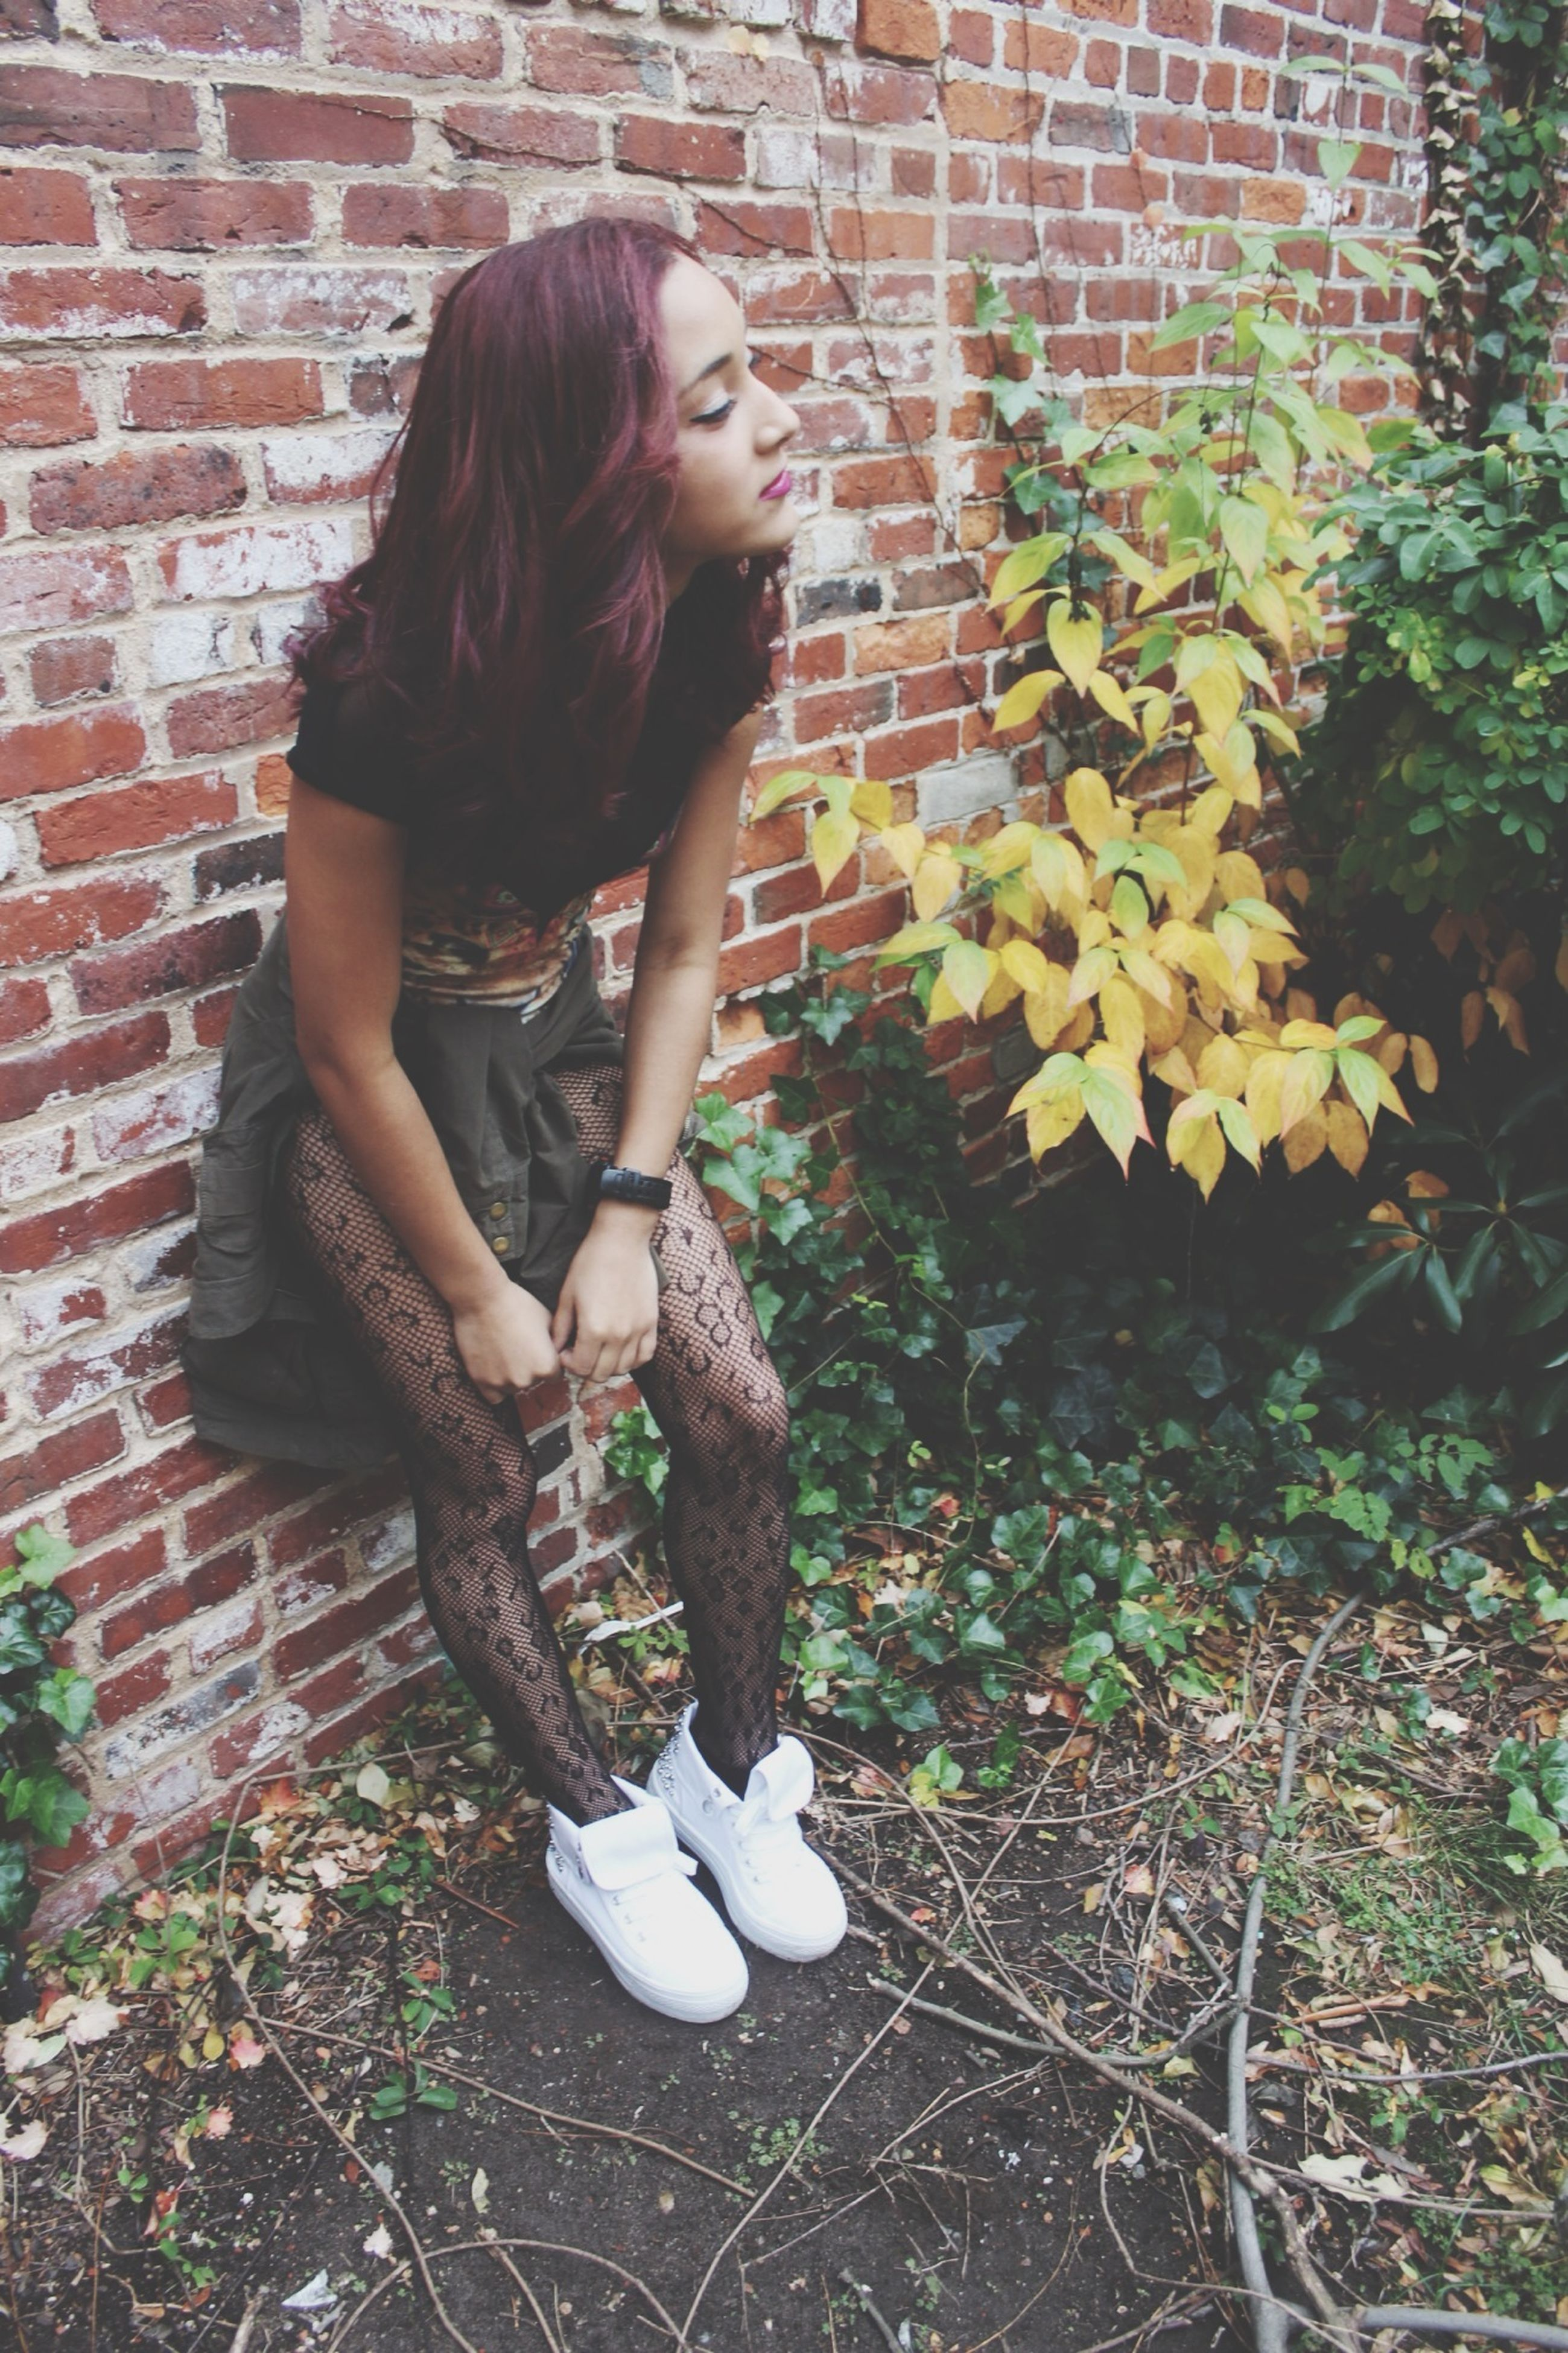 lifestyles, casual clothing, person, leisure activity, young adult, young women, full length, standing, long hair, side view, three quarter length, holding, front view, childhood, elementary age, girls, brick wall